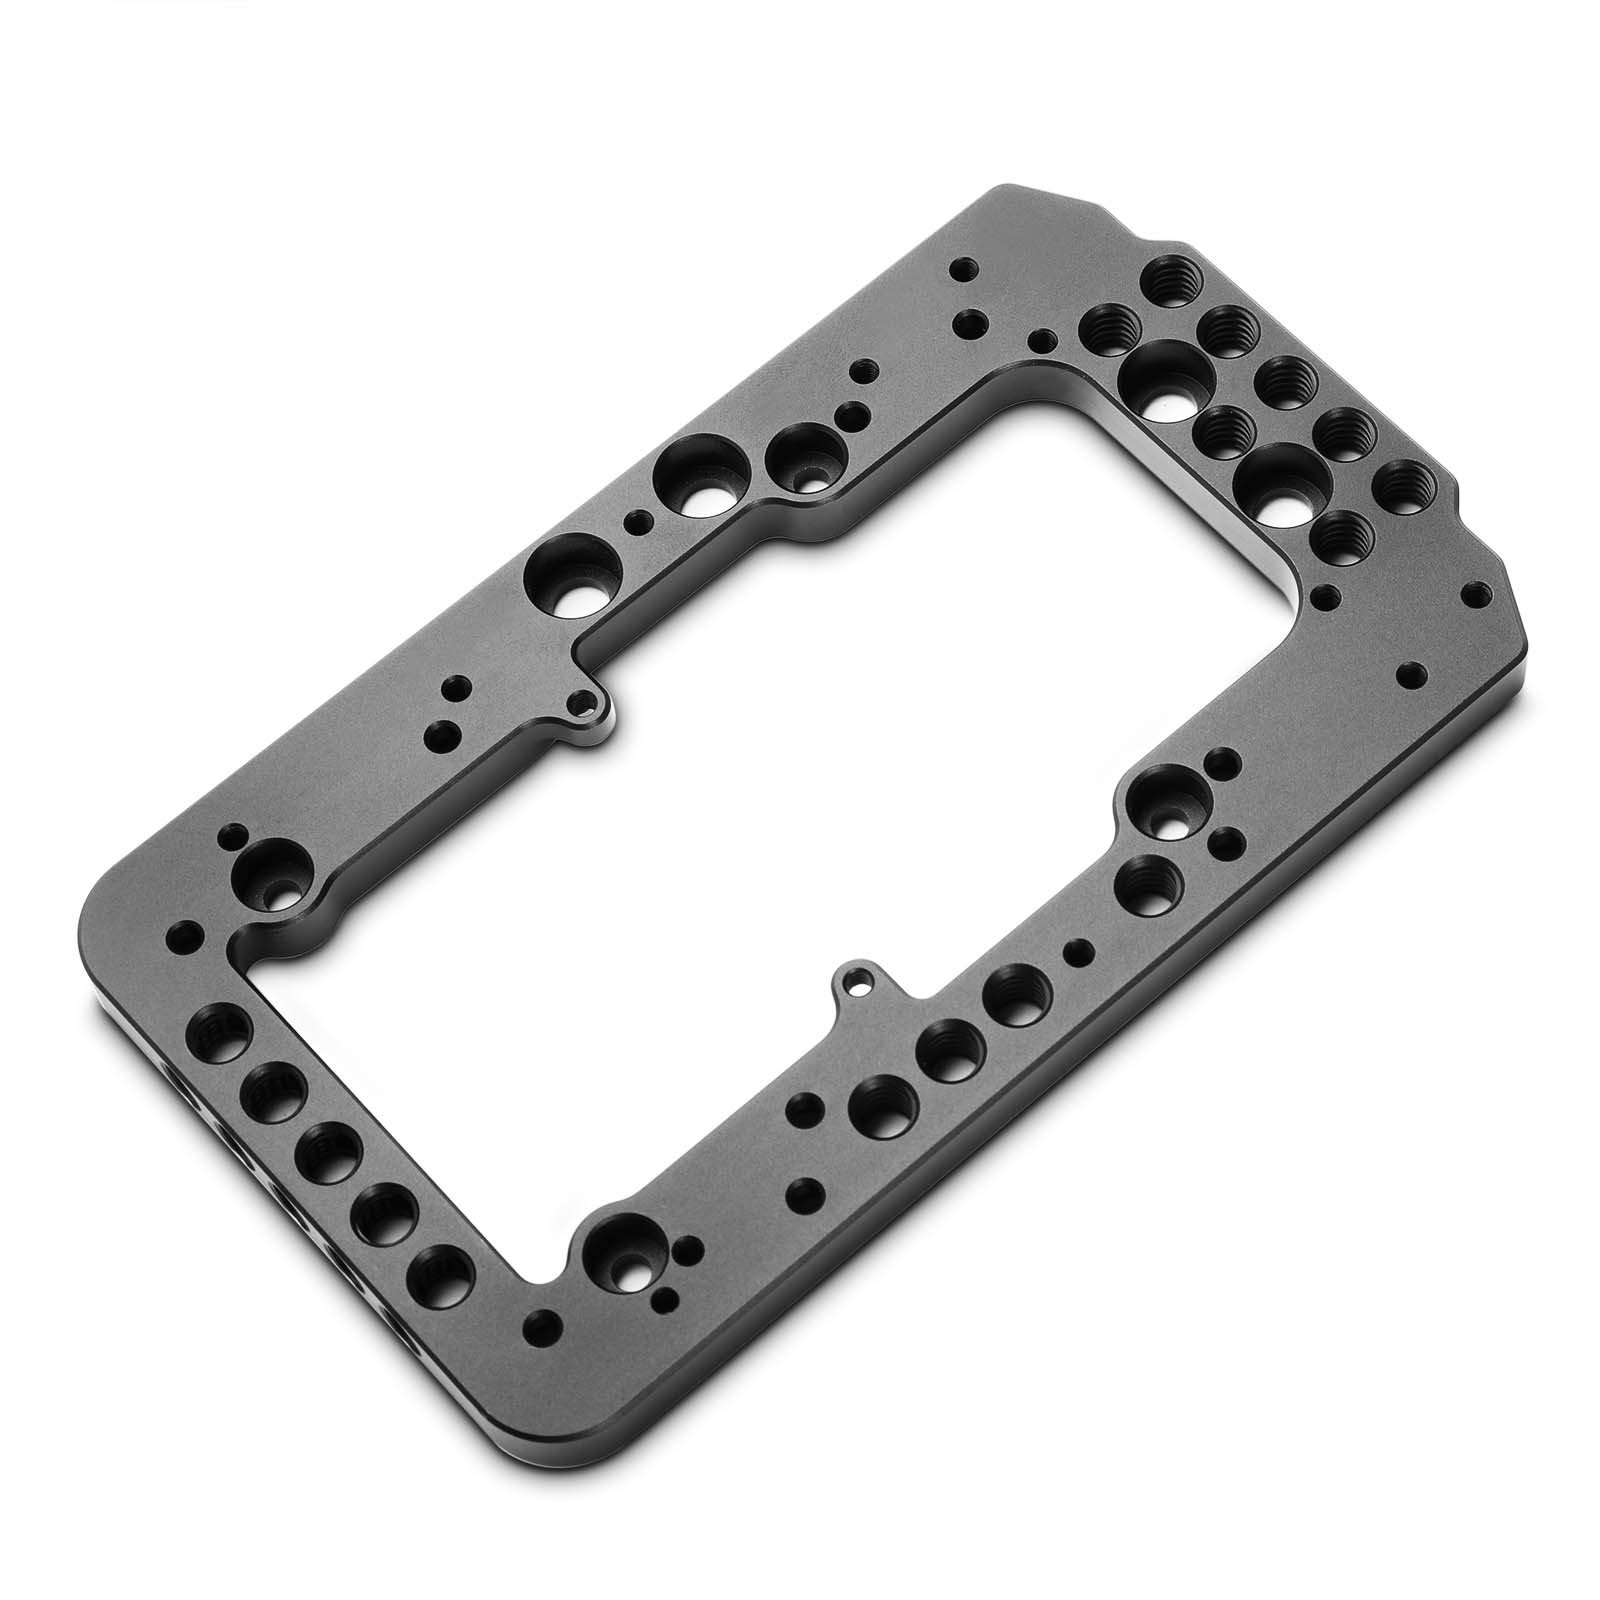 SMALLRIG 1530 Battery Mounting Plate for Red Epic/Scarlet...